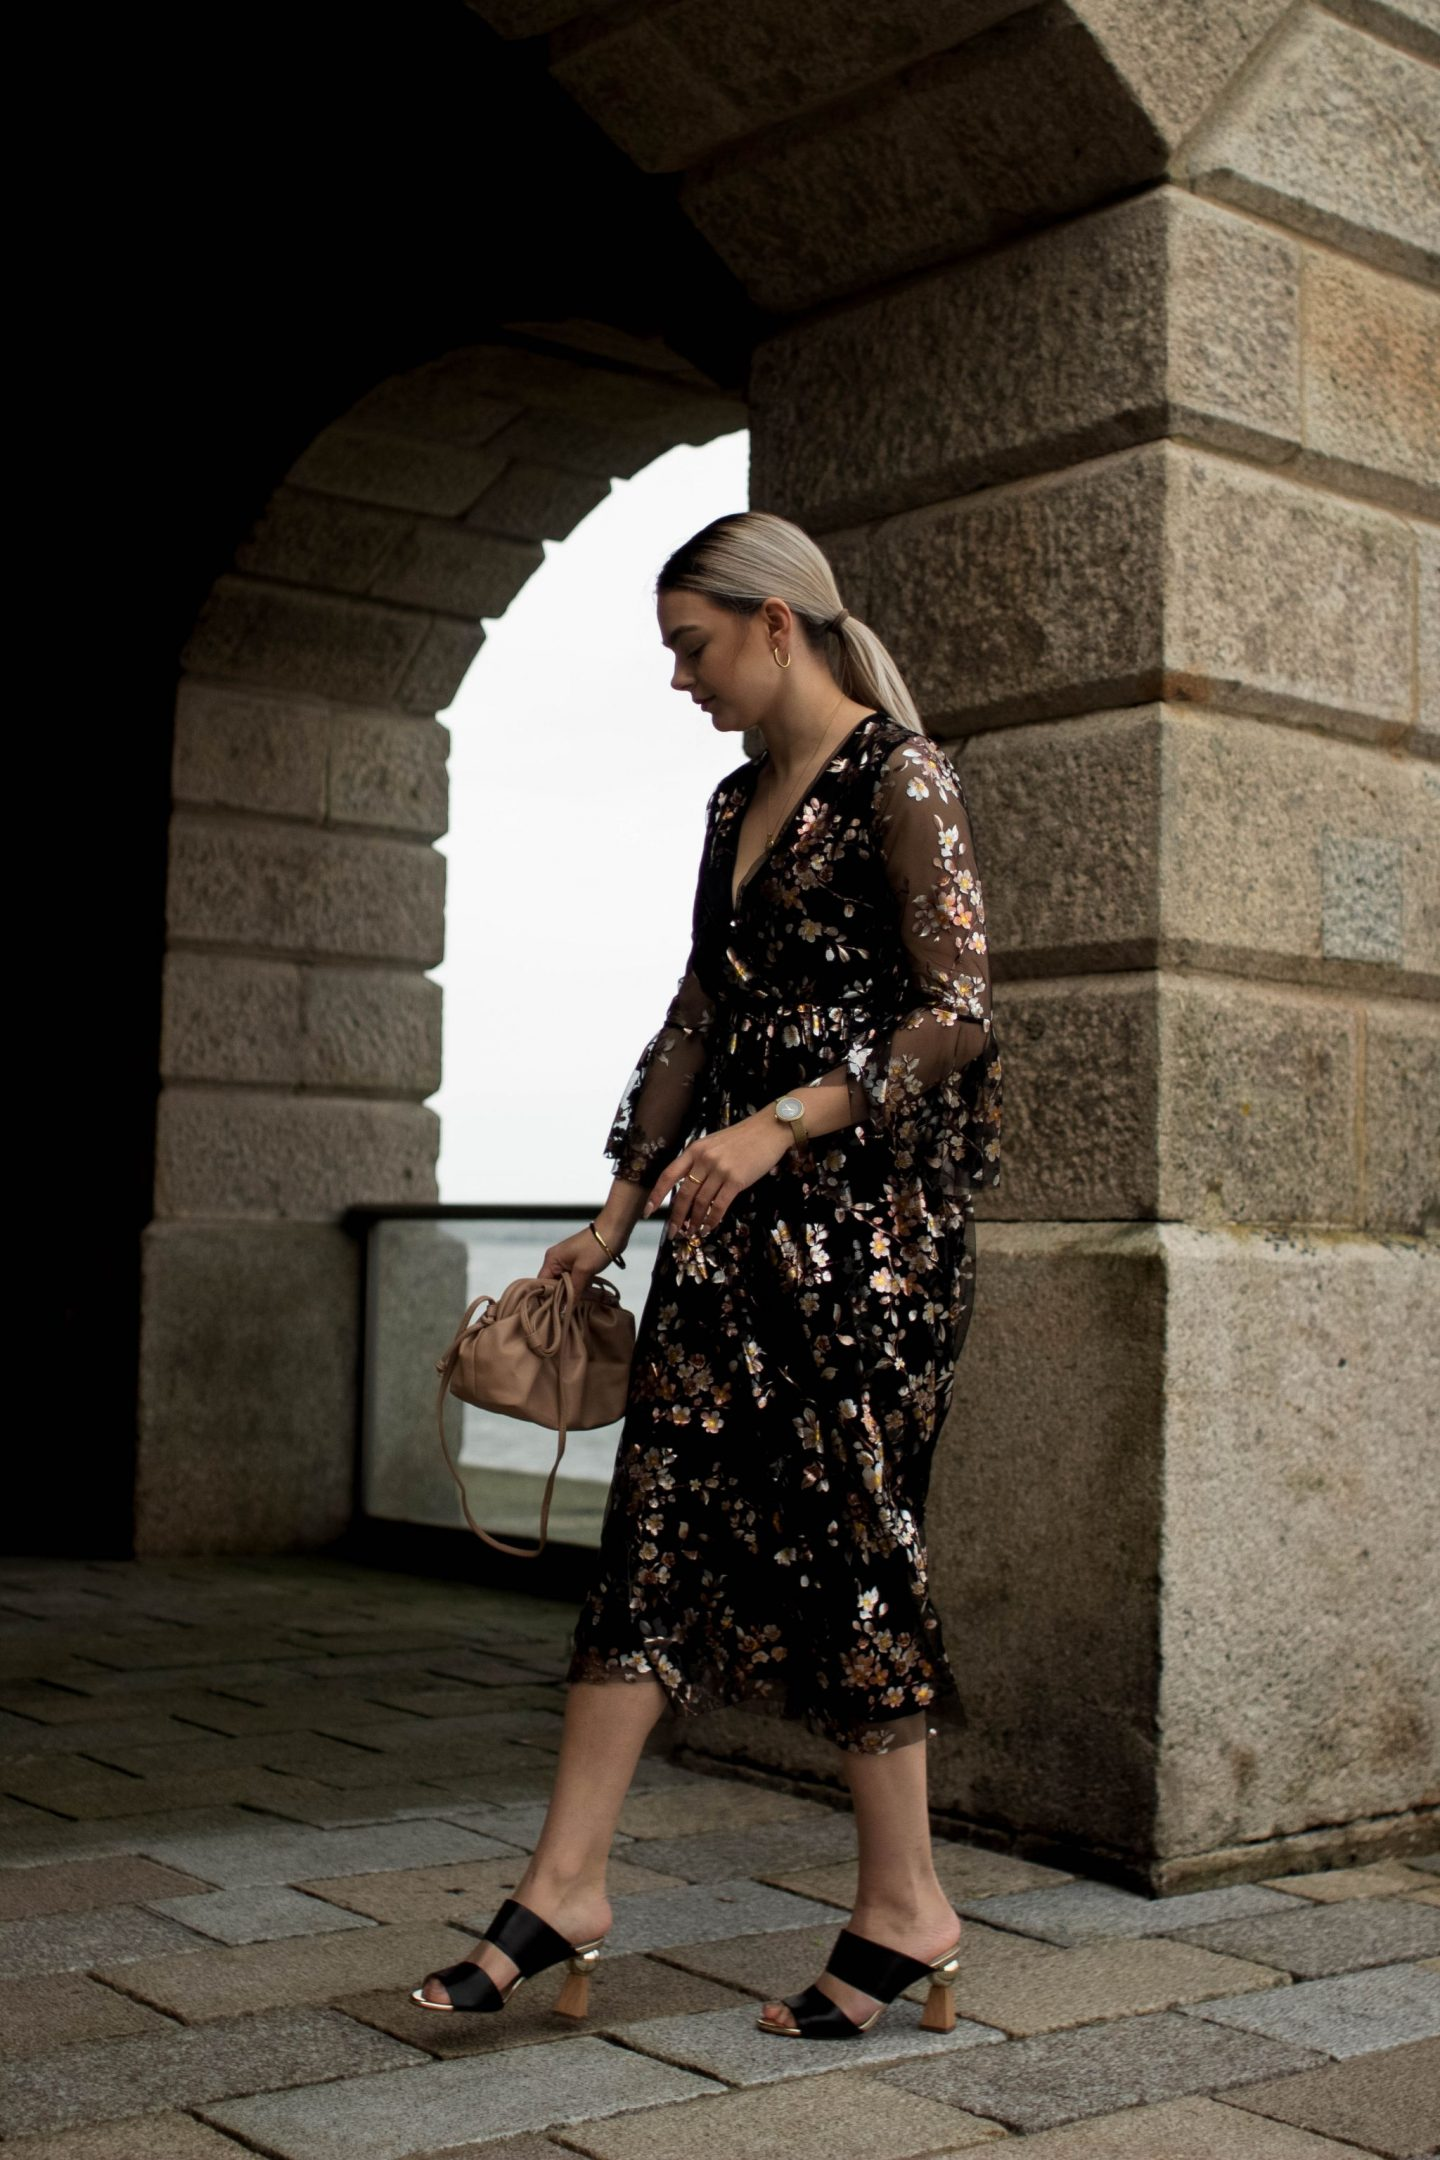 The evening dress essentials for when we want to dress up a little fancier…